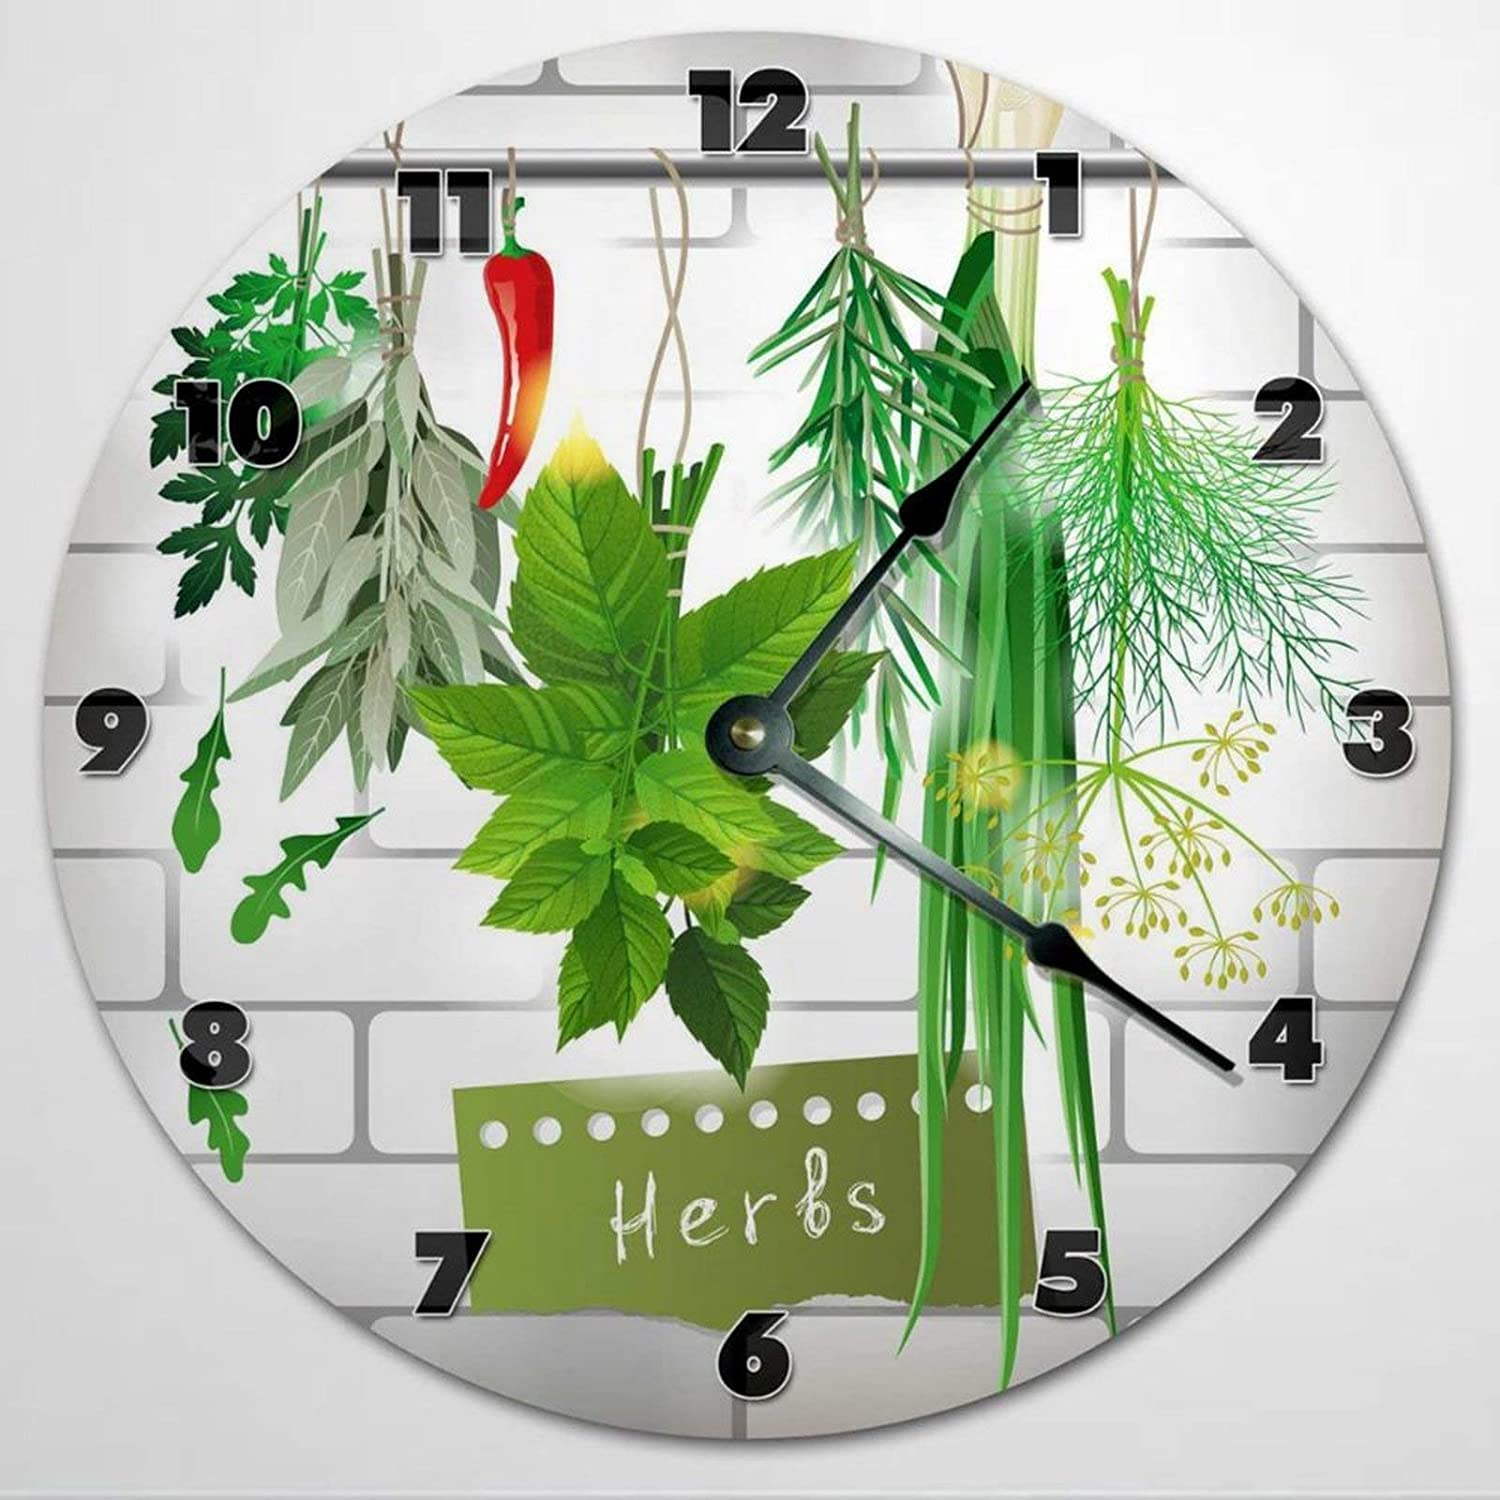 Herbs Spices Cooking Wooden Wall Clock Silent Non Ticking Kitchen Clock 12 Inch Battery Operated Round Easy to Read Food Clock for Home Office School